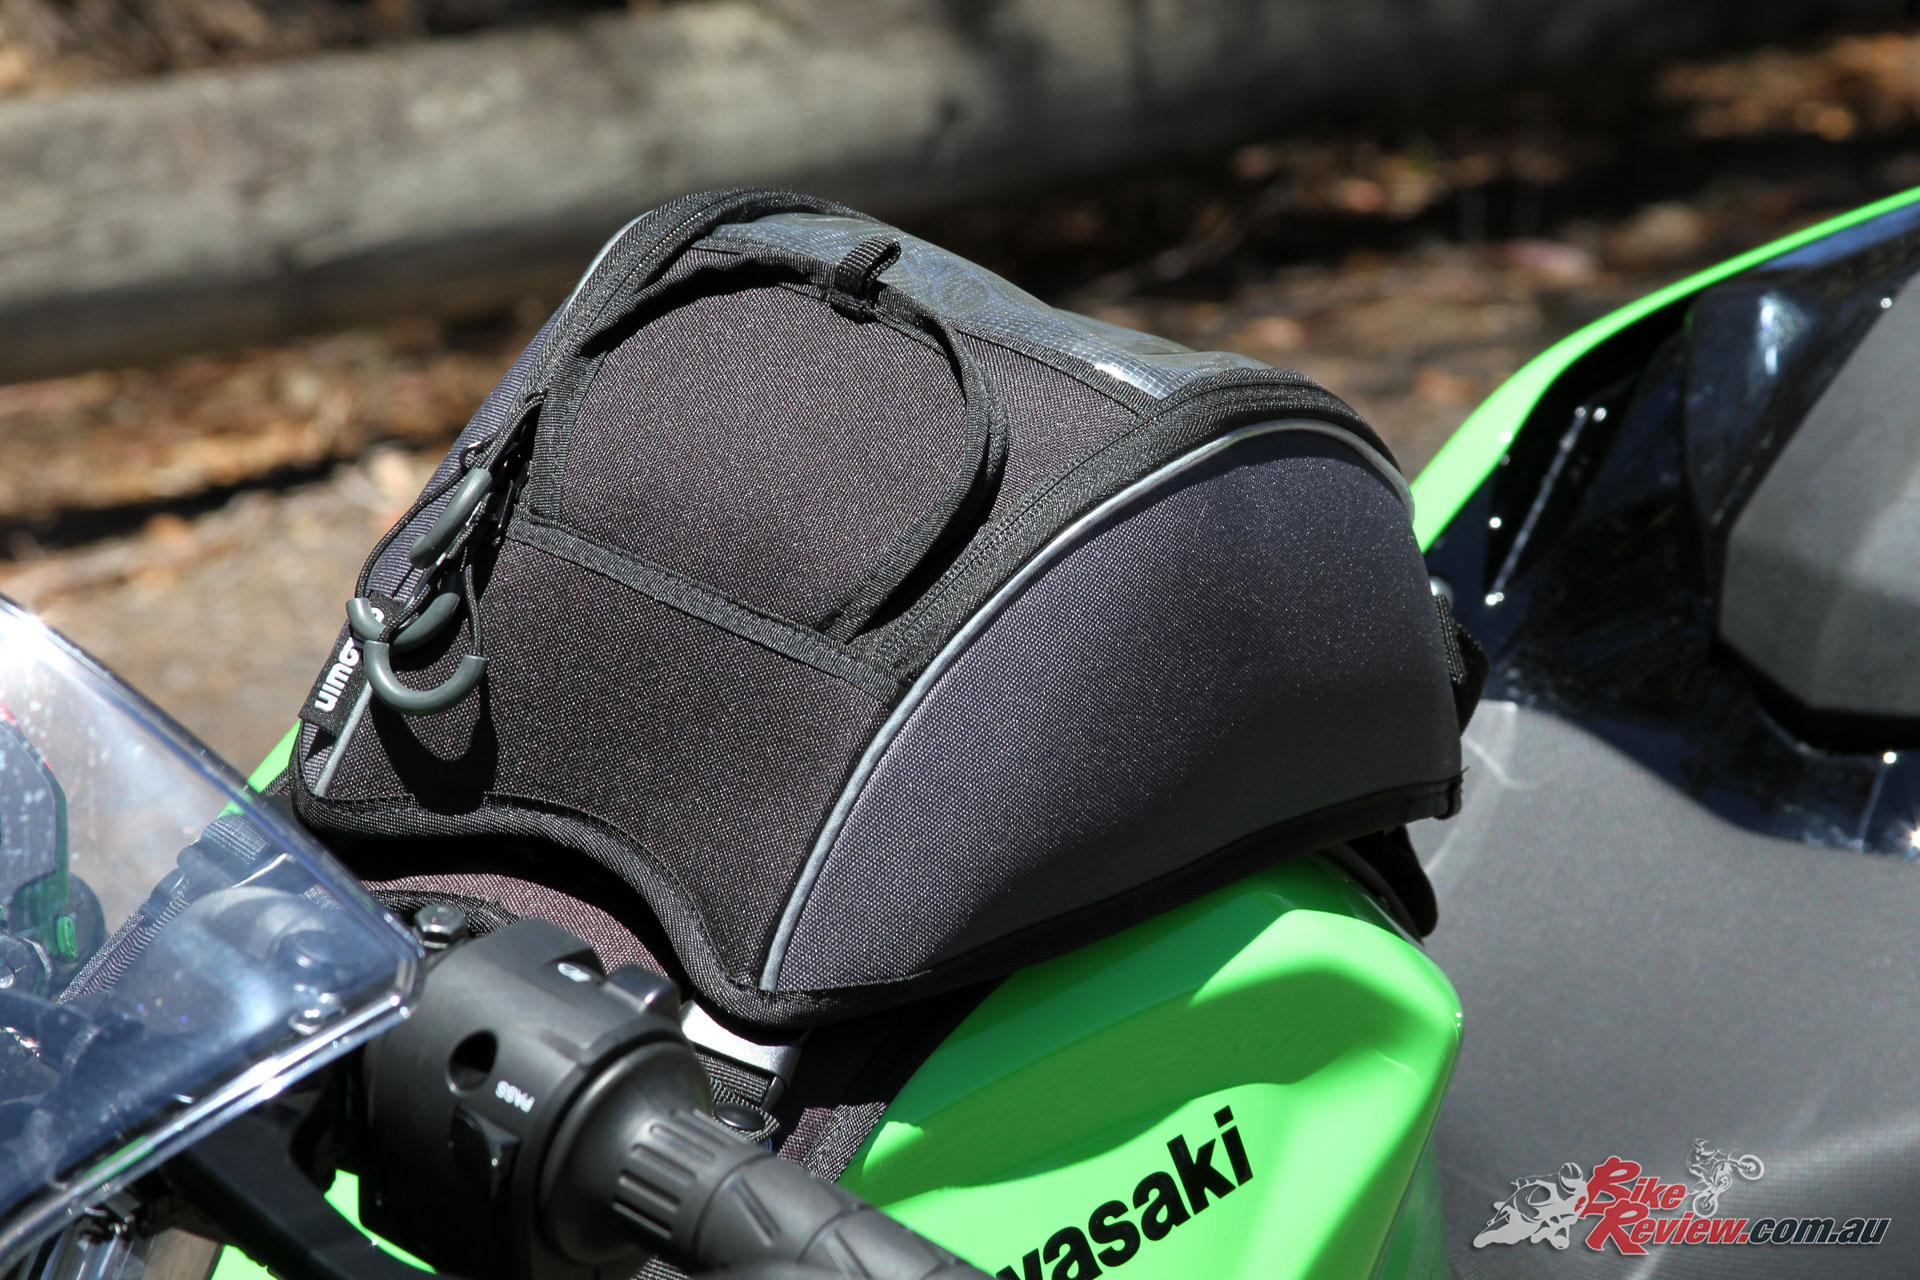 Kawasaki Genuine Tank Bag